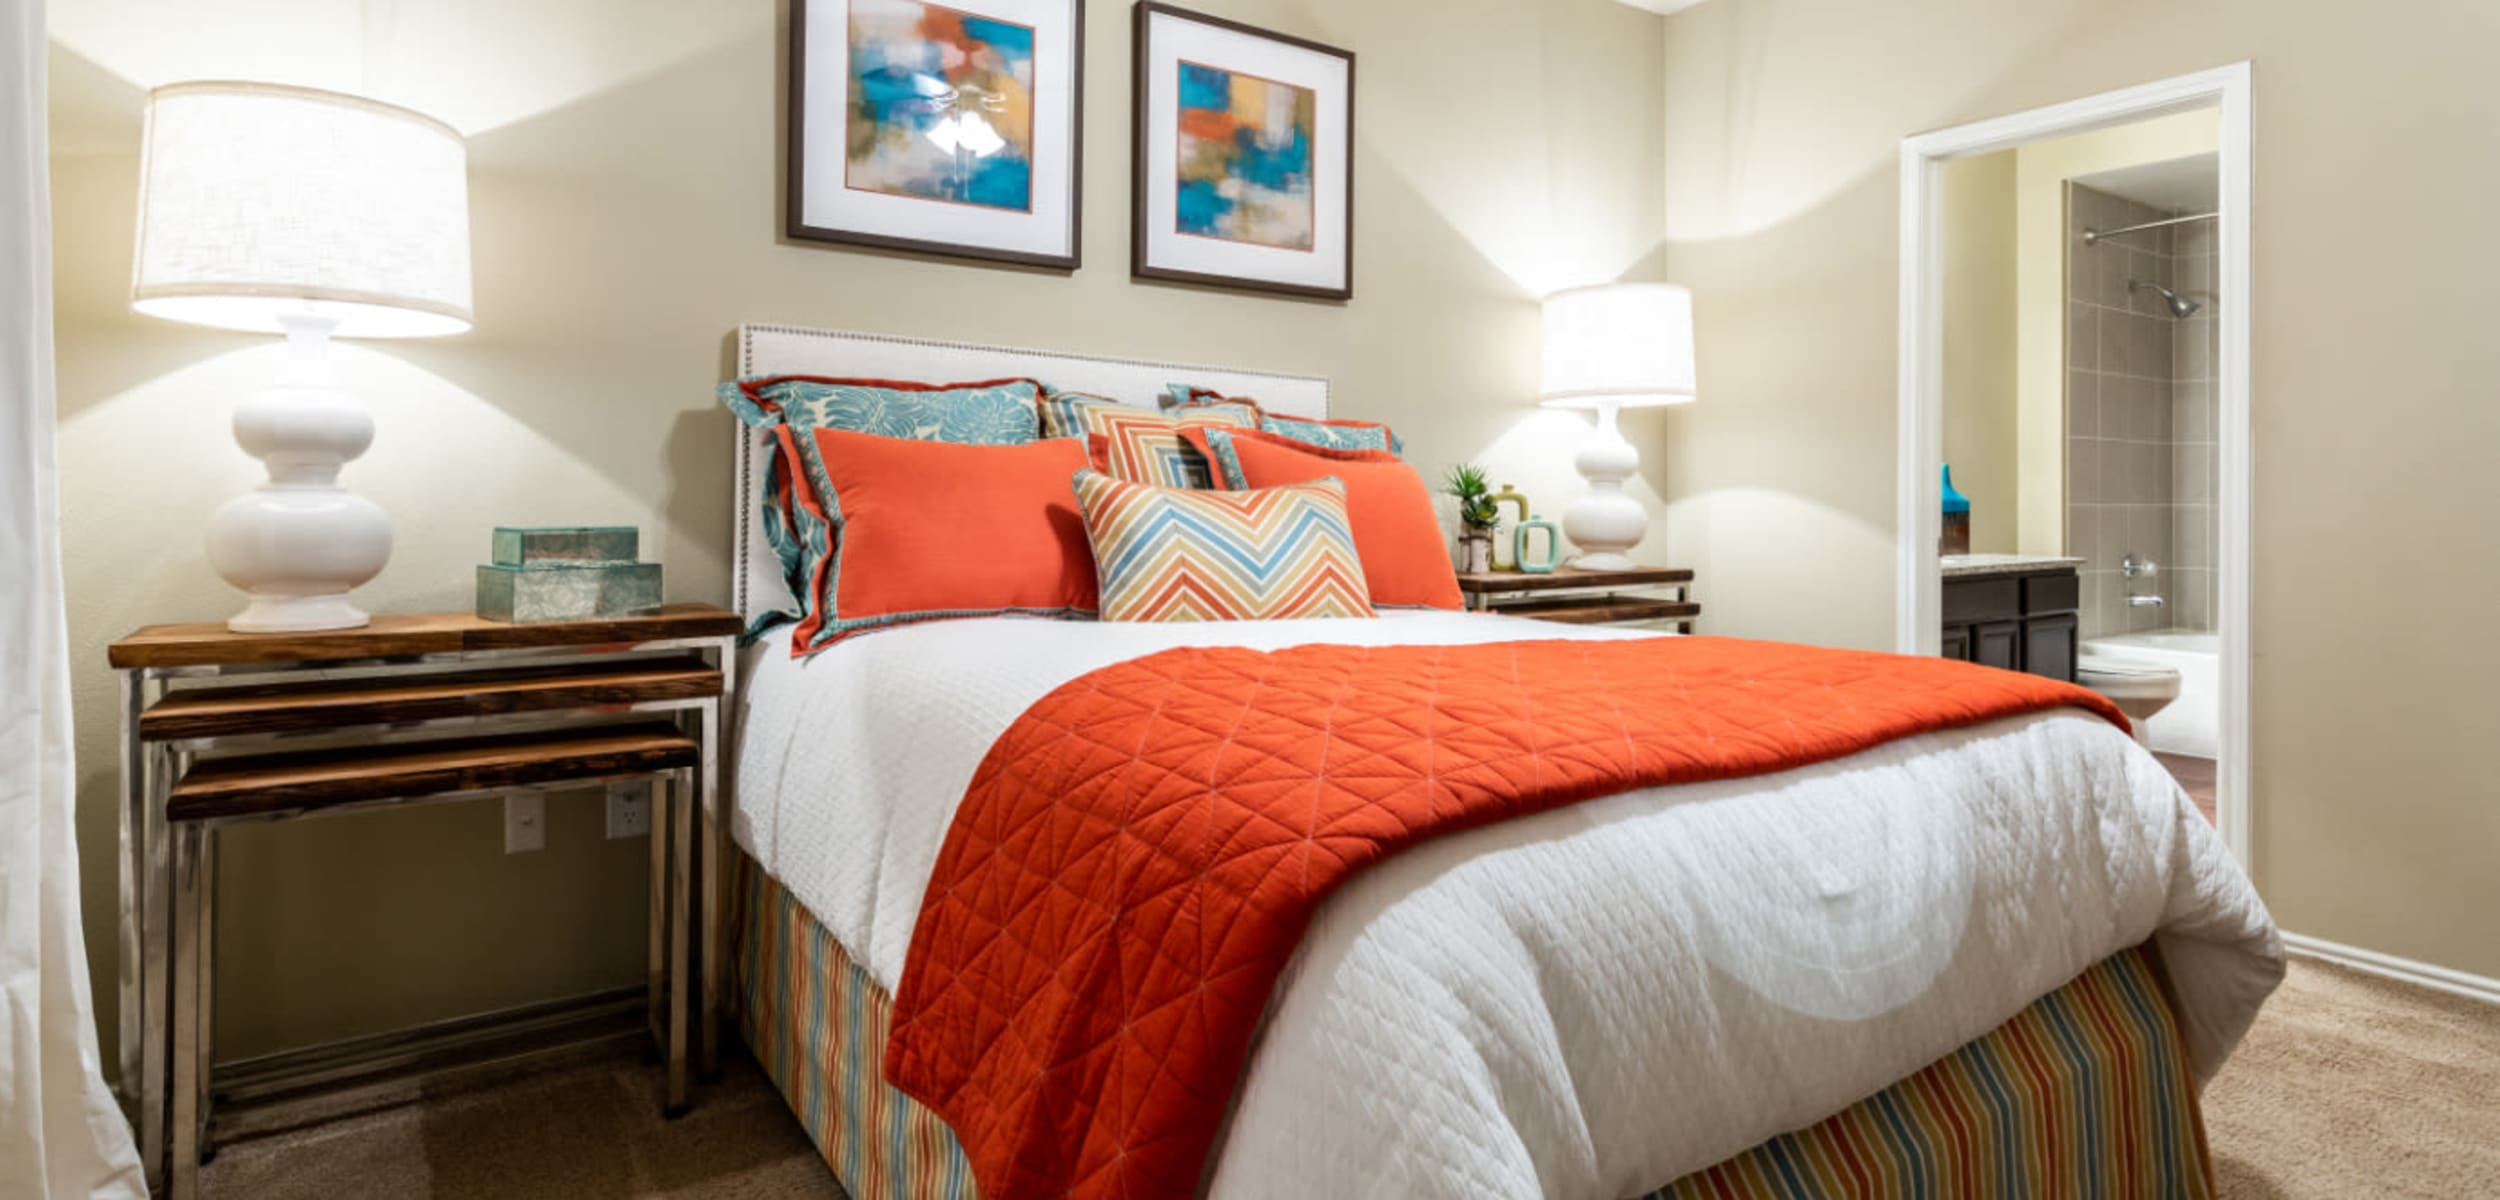 Furnished bedroom at Marquis at Ladera Vista in Austin, Texas